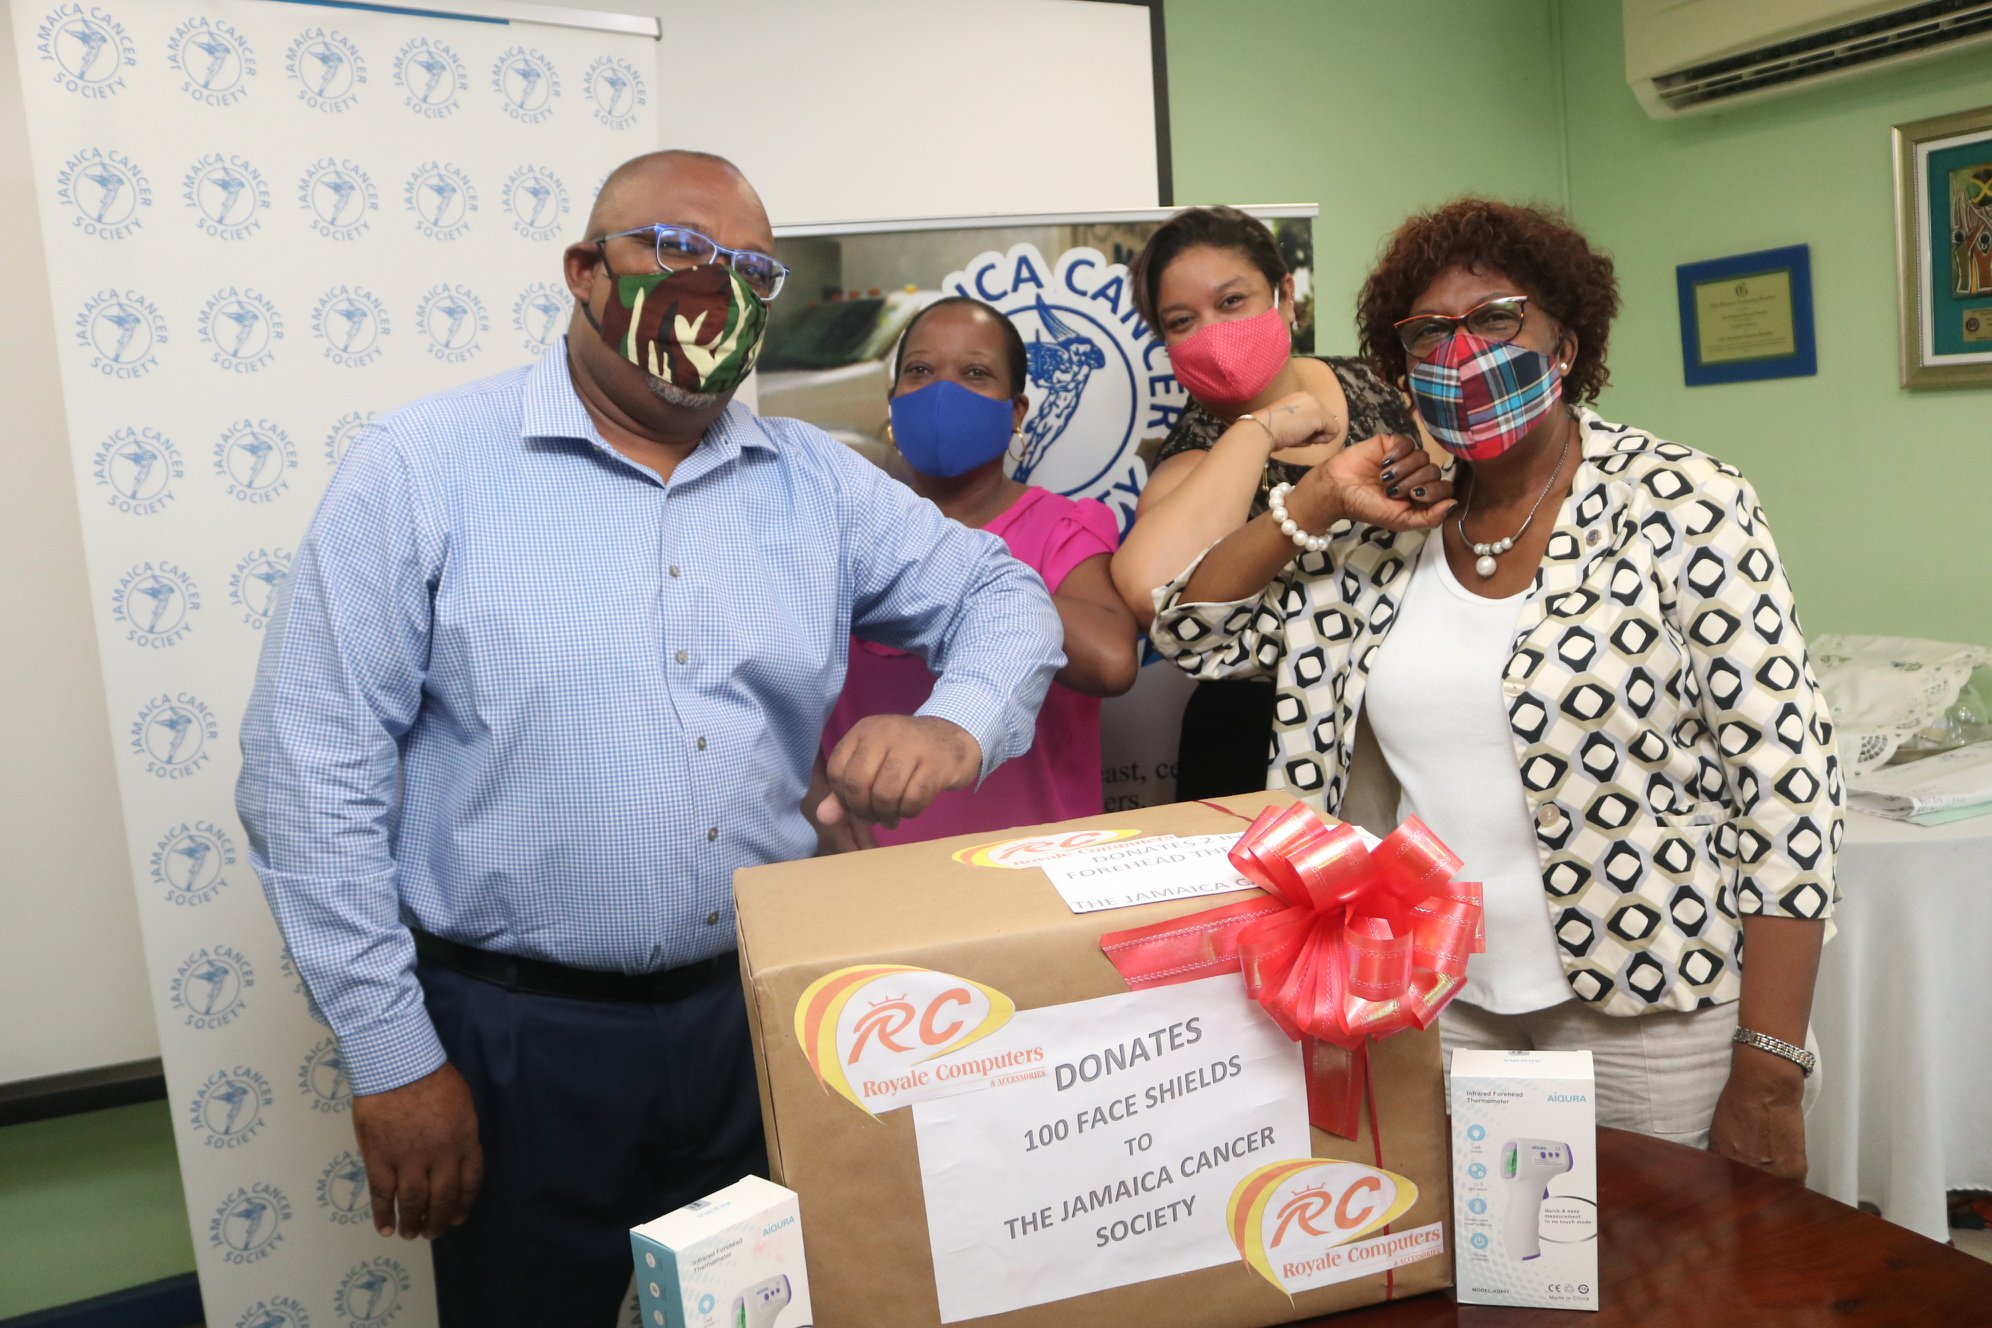 100 face shields and two infrared thermometers Donated